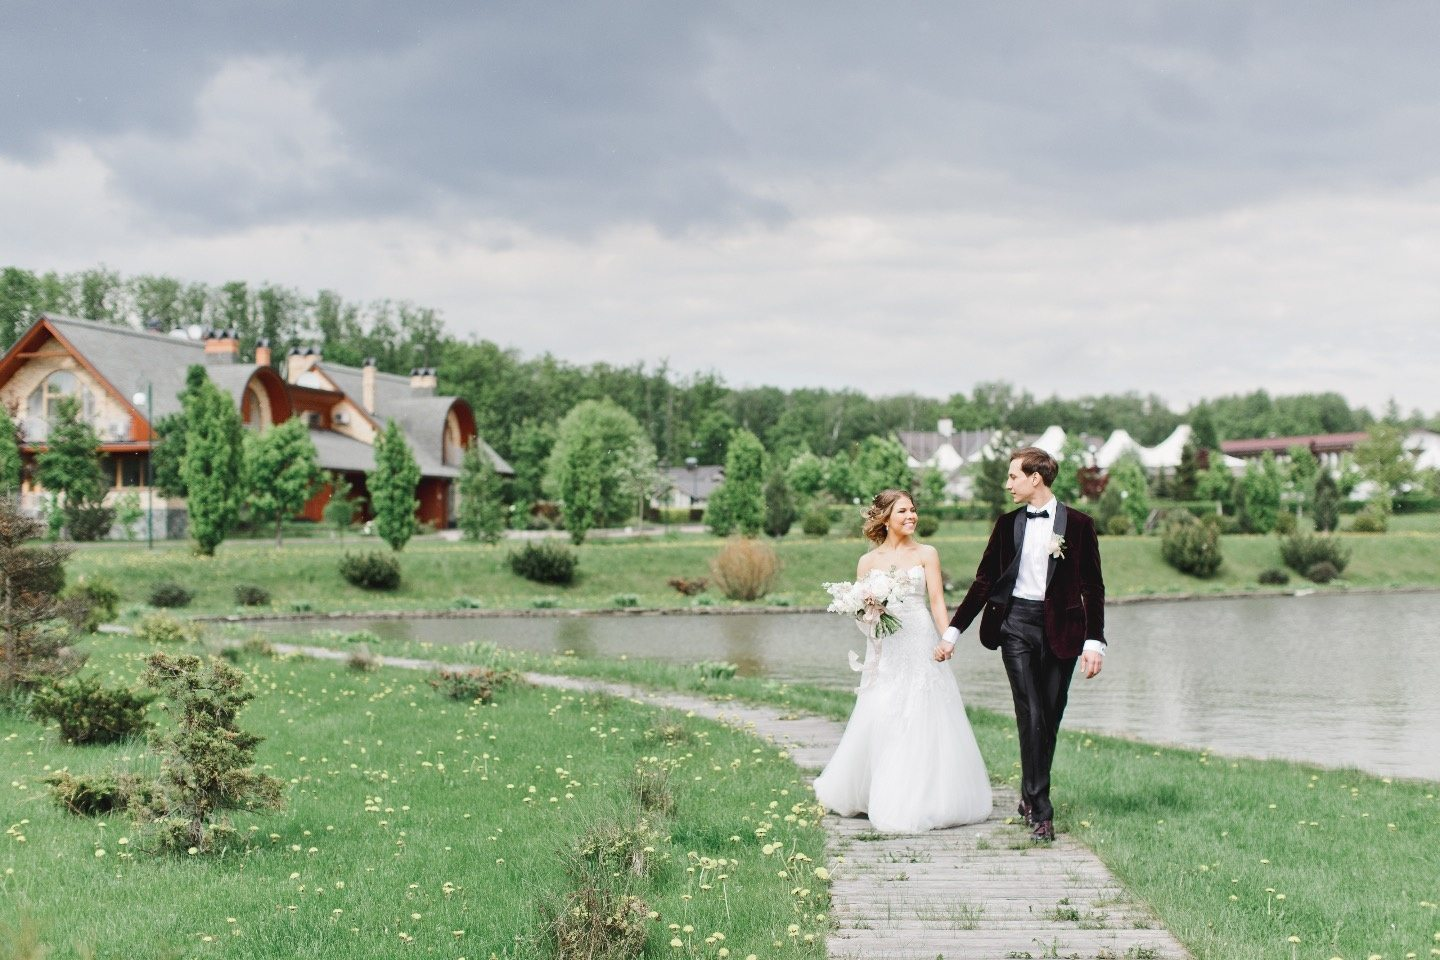 Shine & Wine Wedding: история Юлии и Данияра